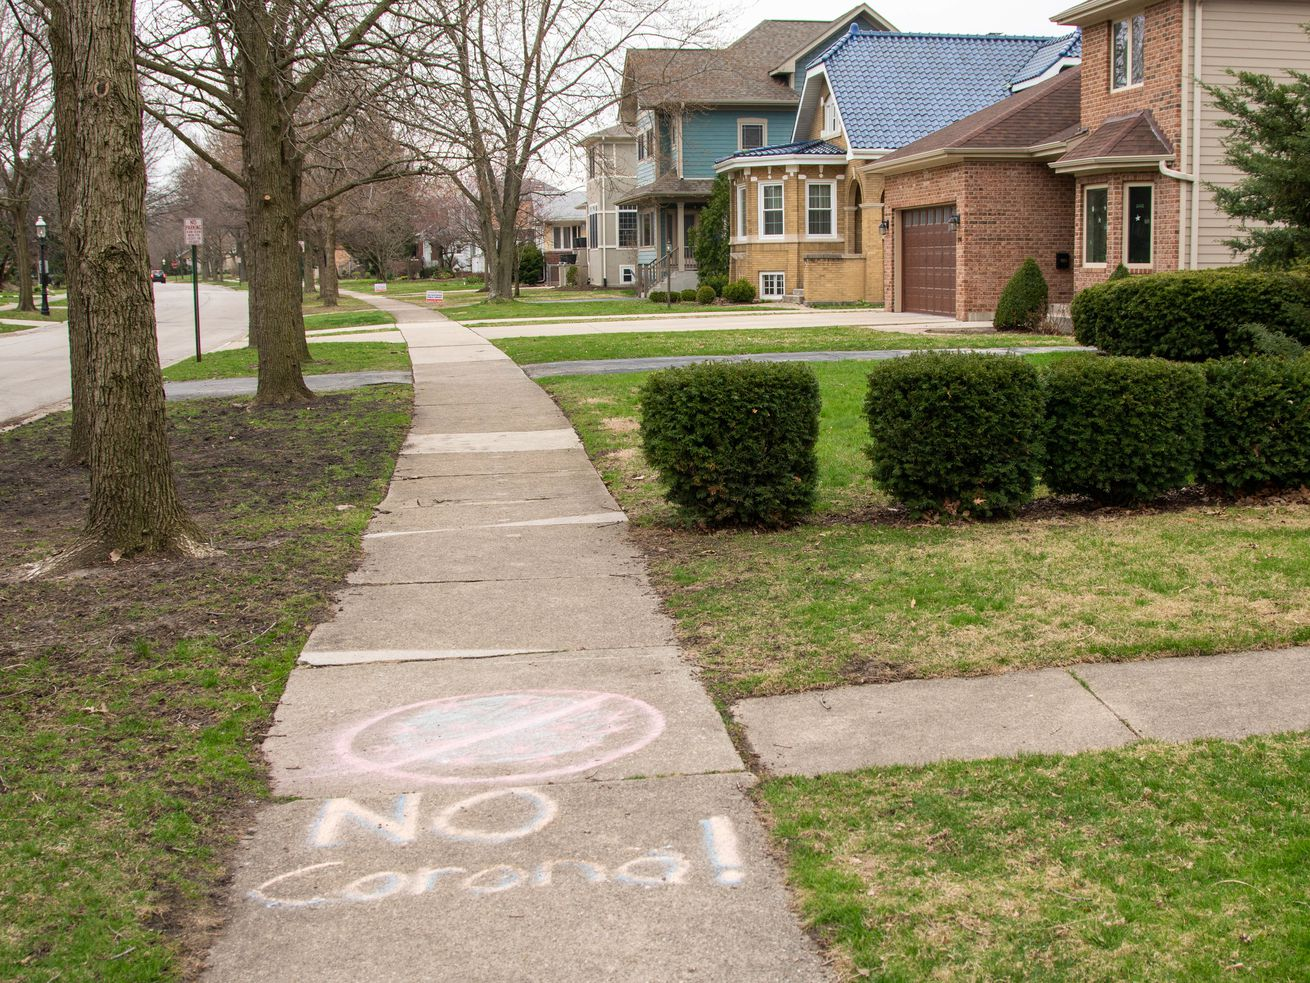 South and west suburban properties to get break in assessments to reflect COVID-19 impact